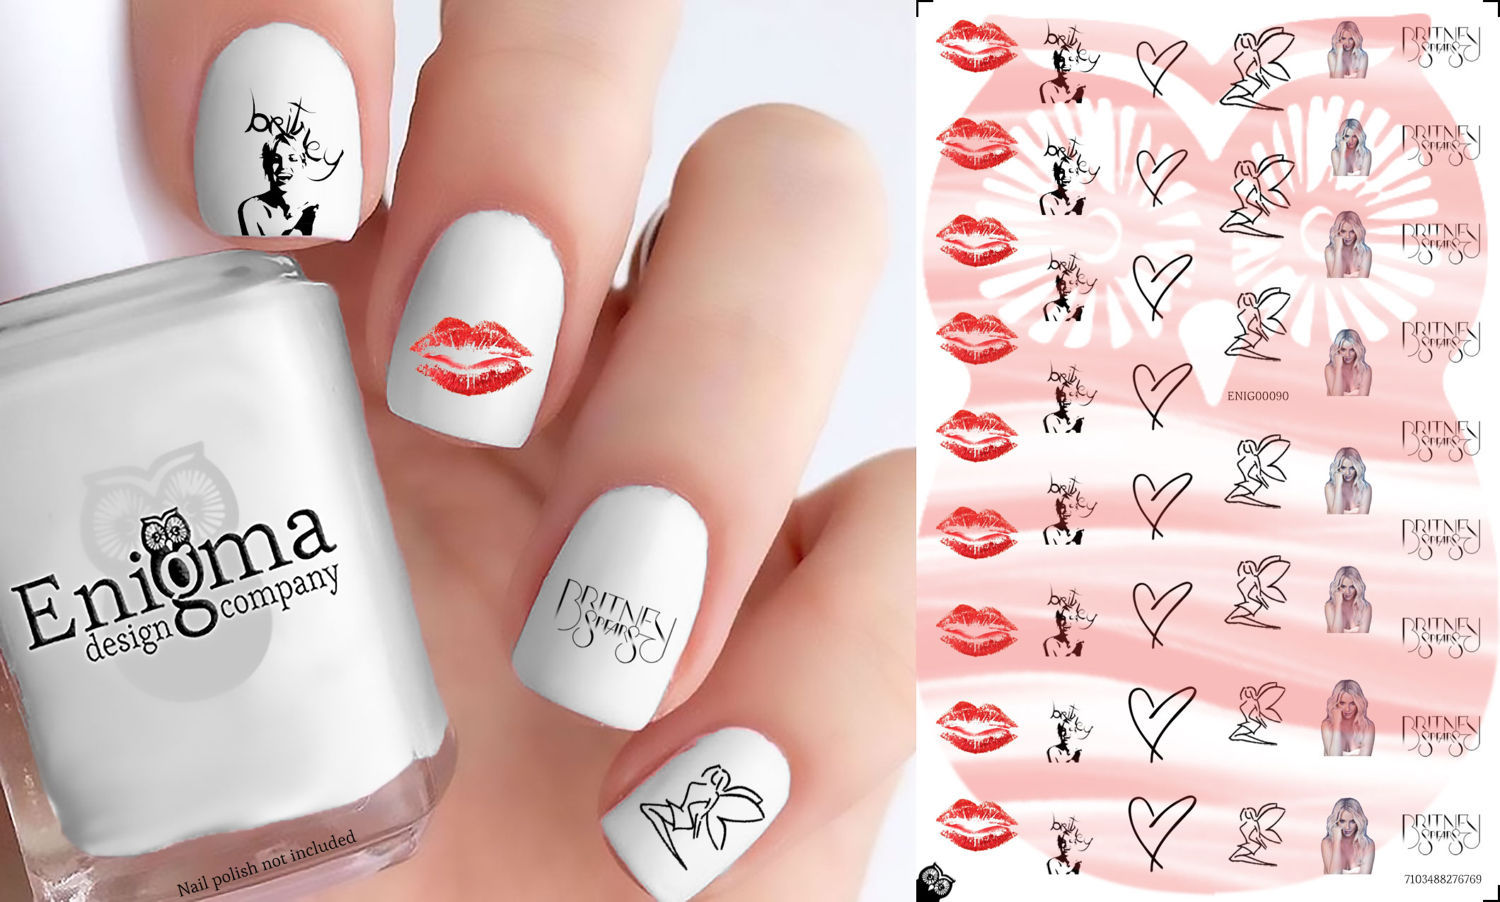 Britney Spears Nail Decals (Set of 50) and 26 similar items